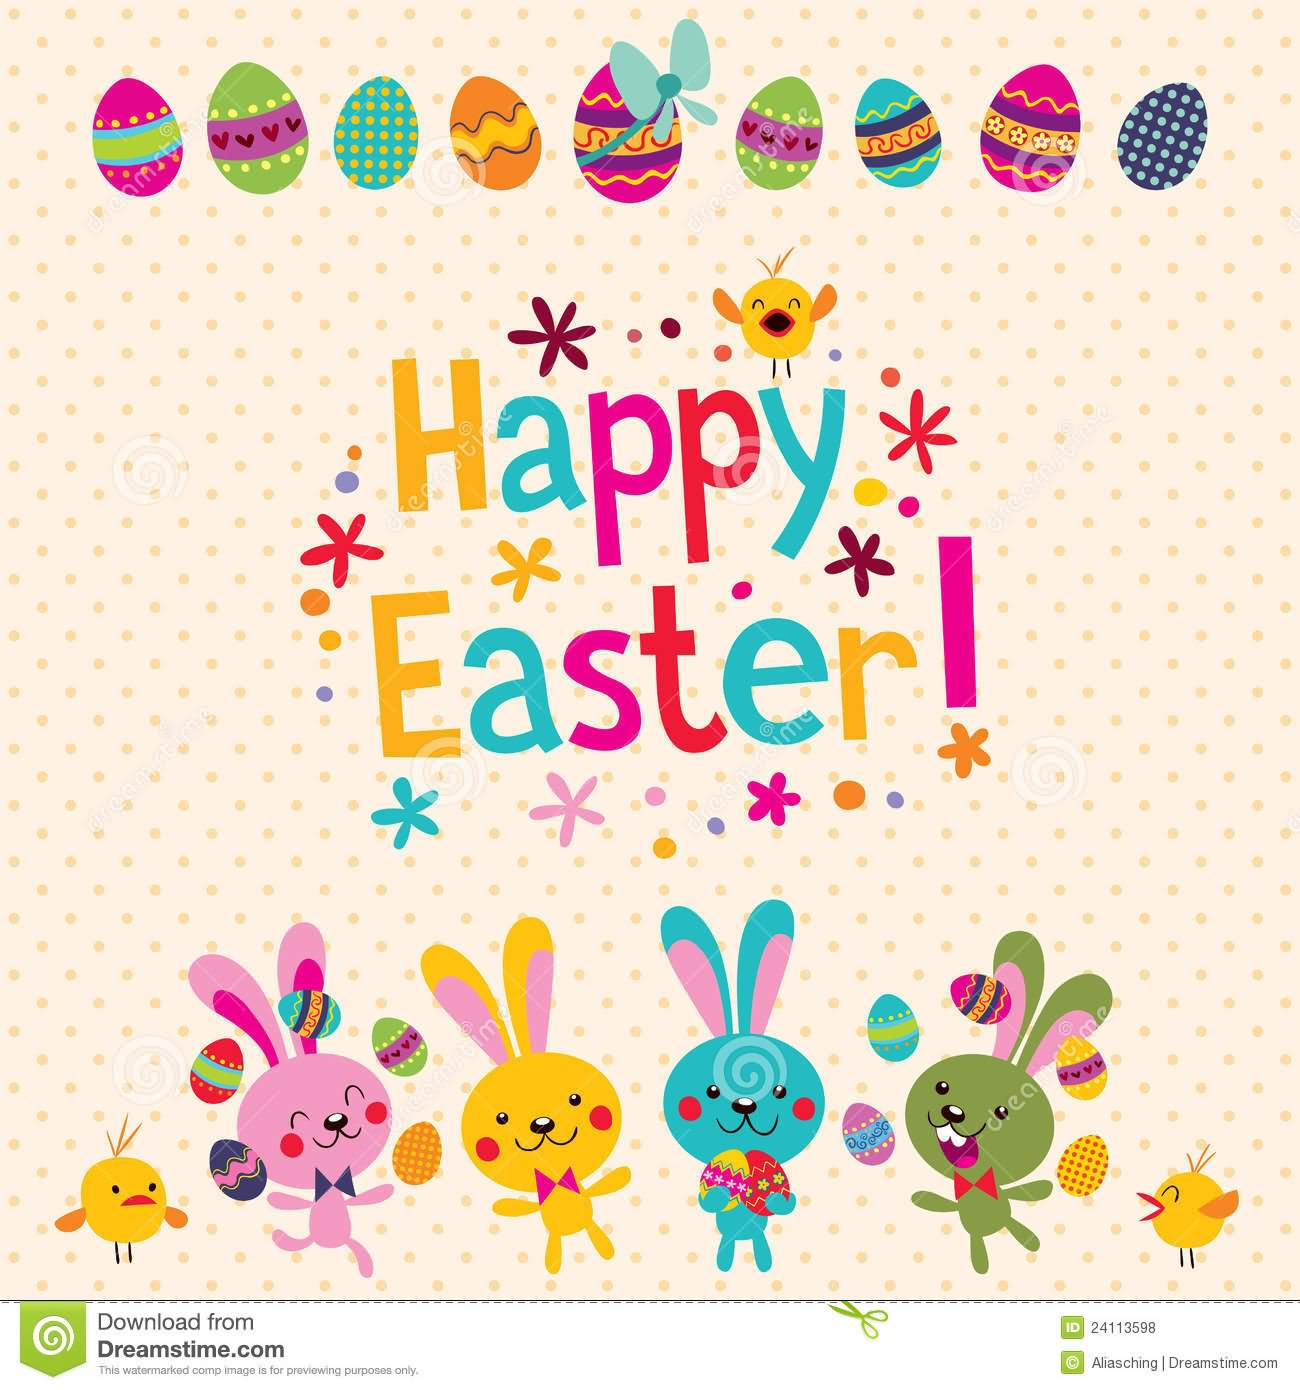 85 very beautiful easter greeting pictures and photos happy easter greeting card picture kristyandbryce Choice Image